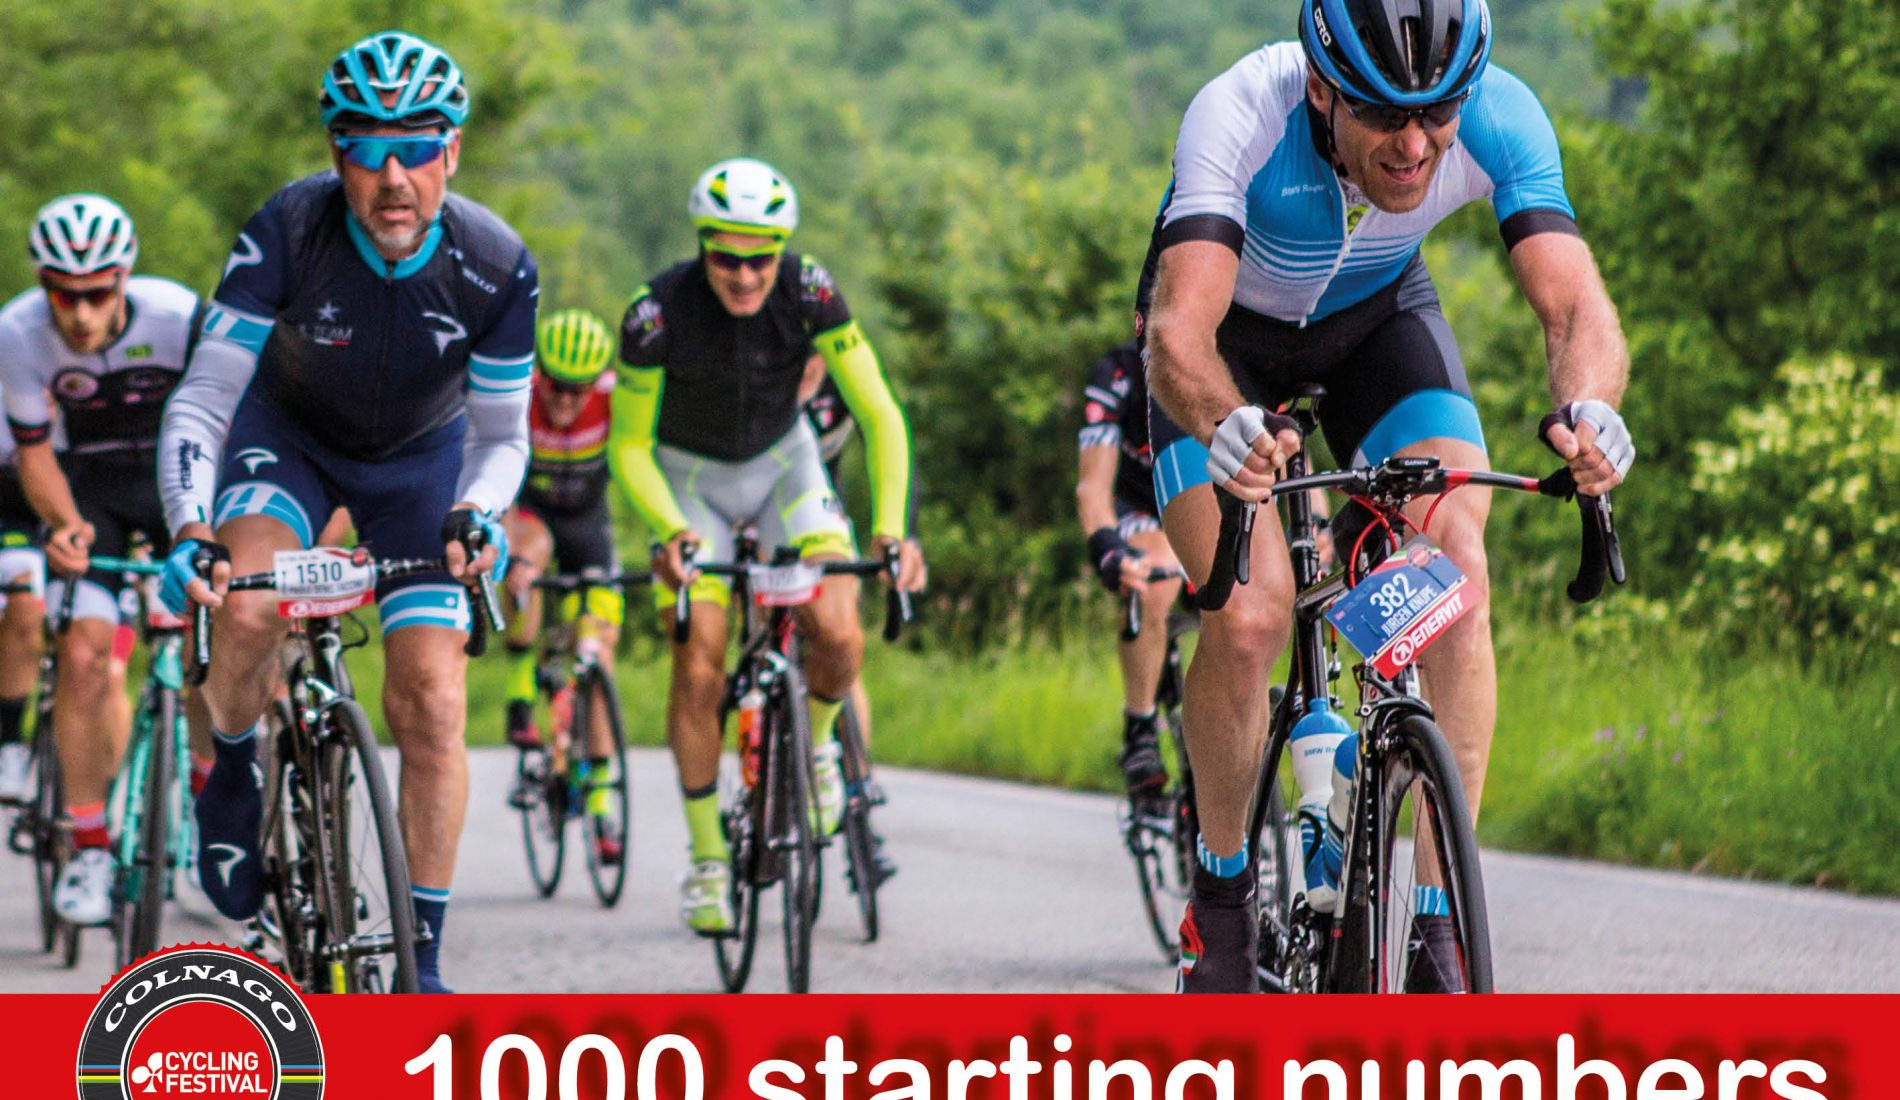 THURSDAY 11th JANUARY 9 p.m. – 1000 RACE NUMBERS FOR THE COLNAGO CYCLING FESTIVAL 2018